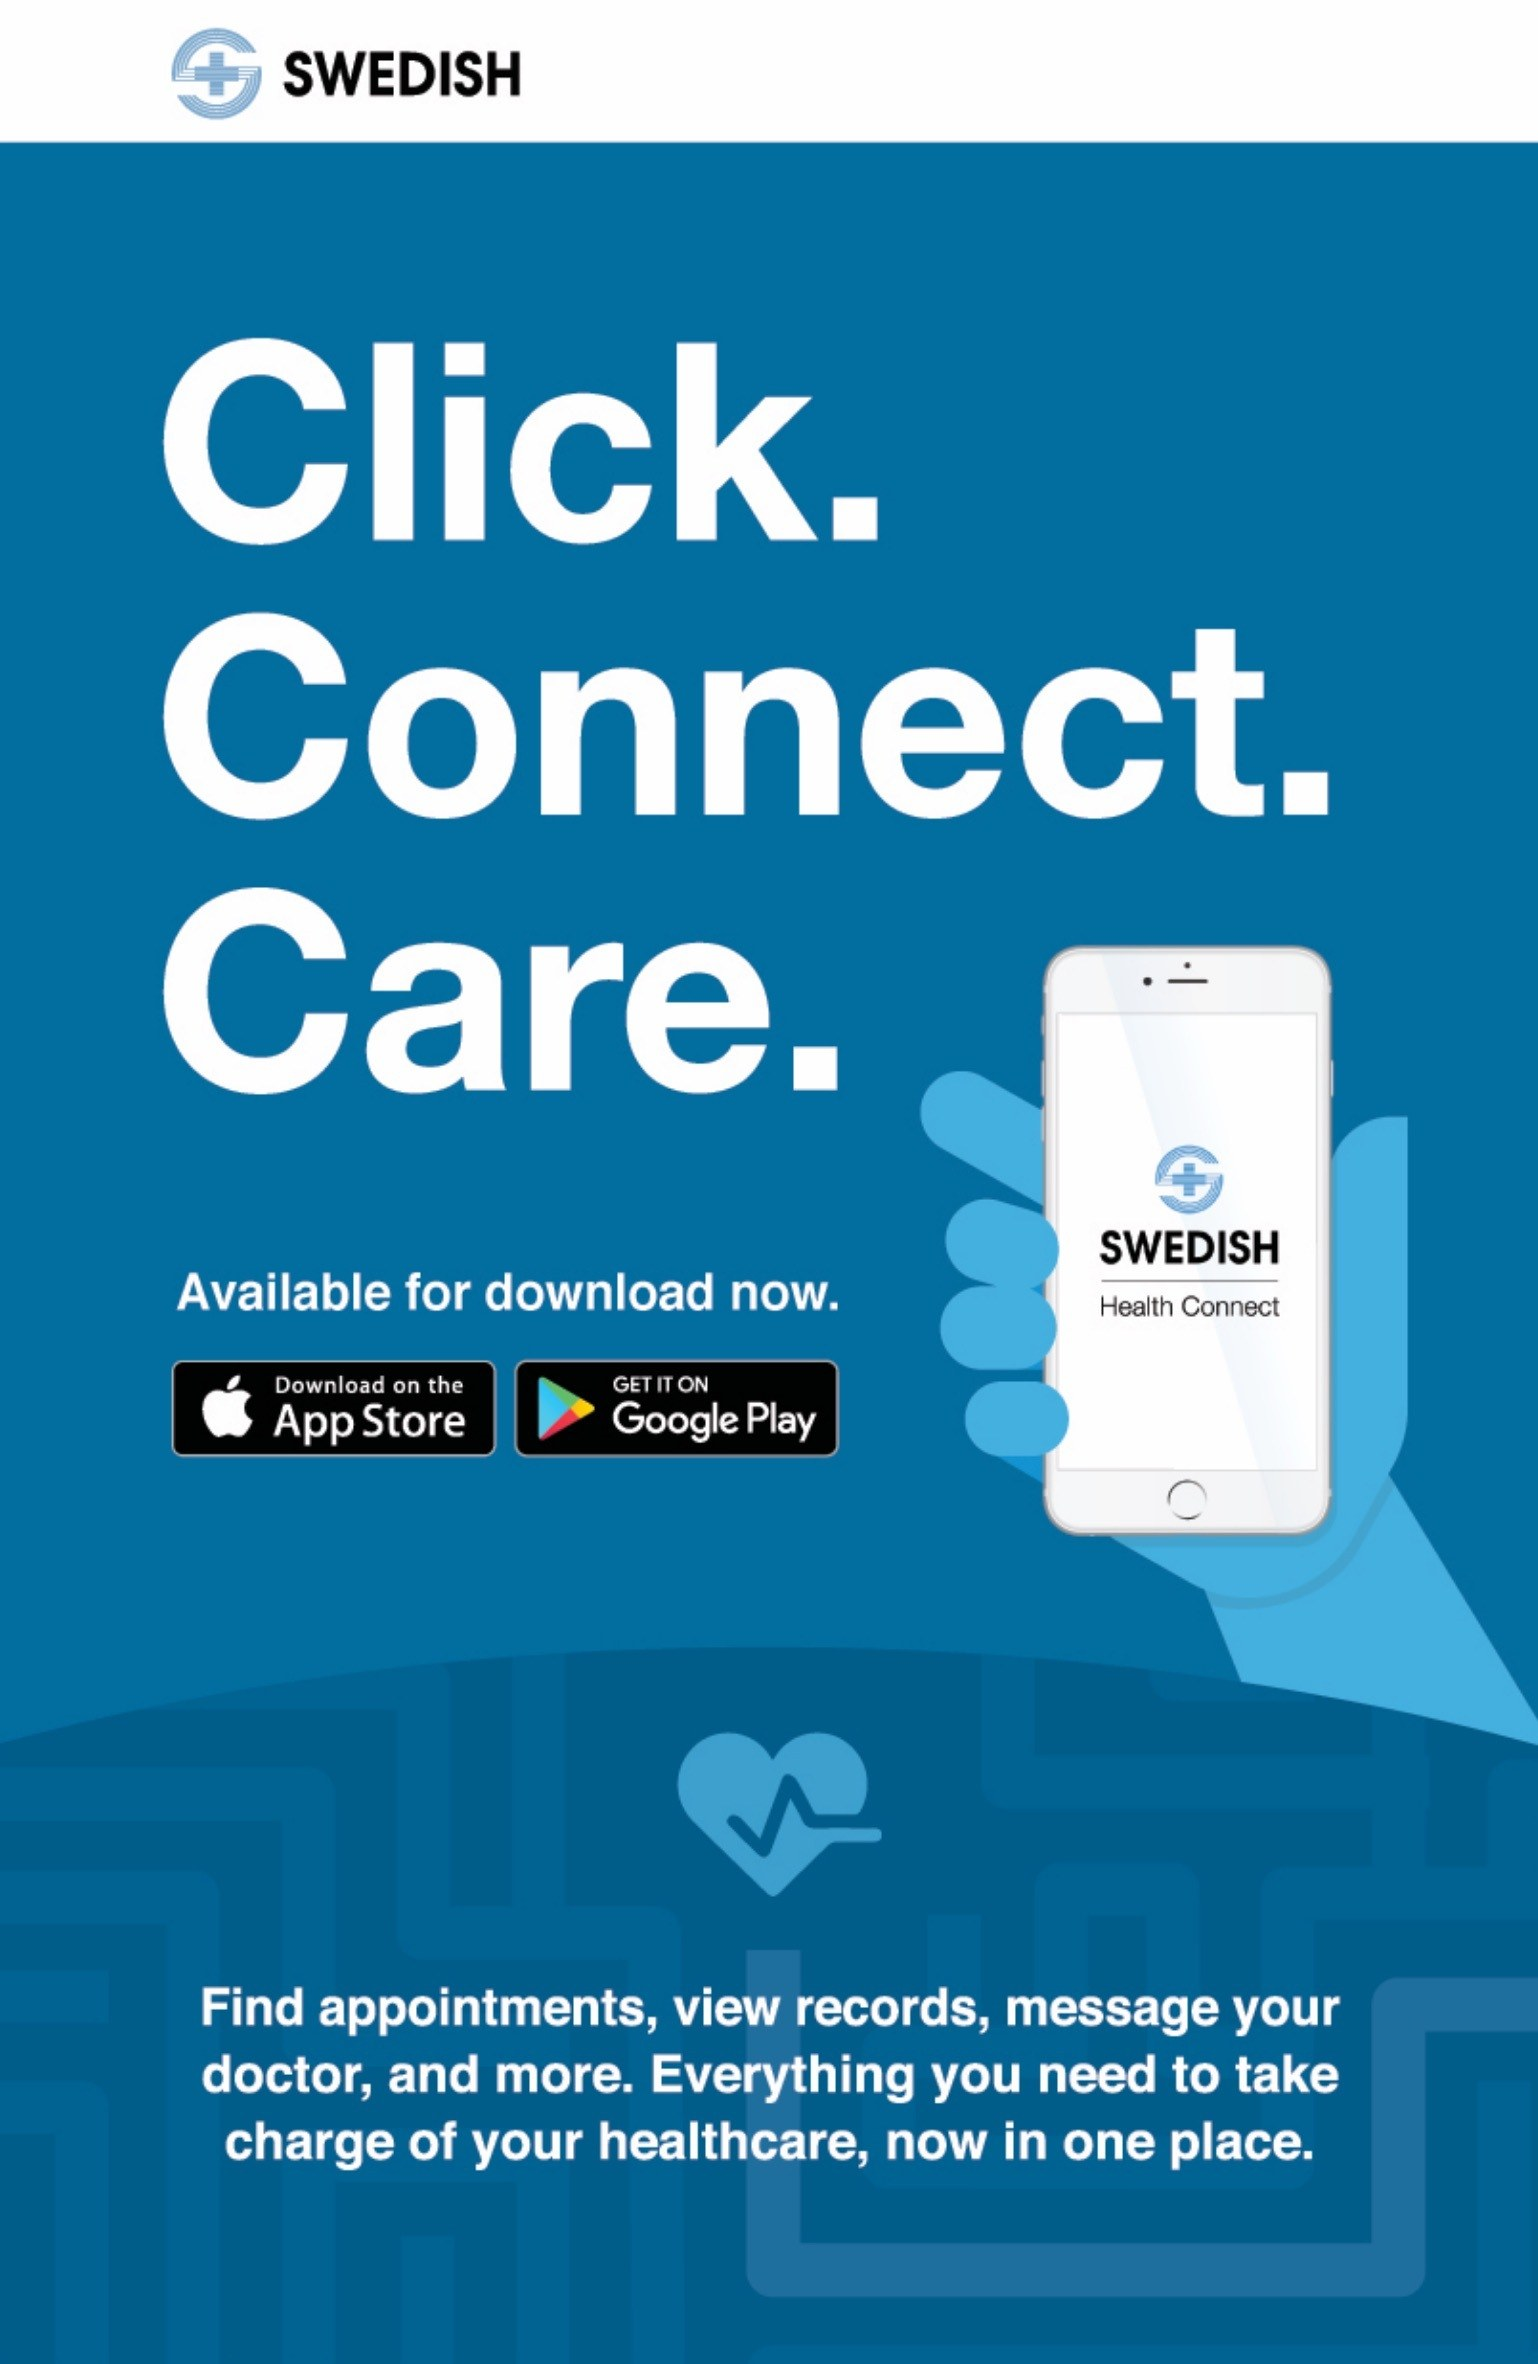 Illustrated promo to download the Swedish Health Connect App from the Apple App Store or Google Play. Click. Connect. Care.